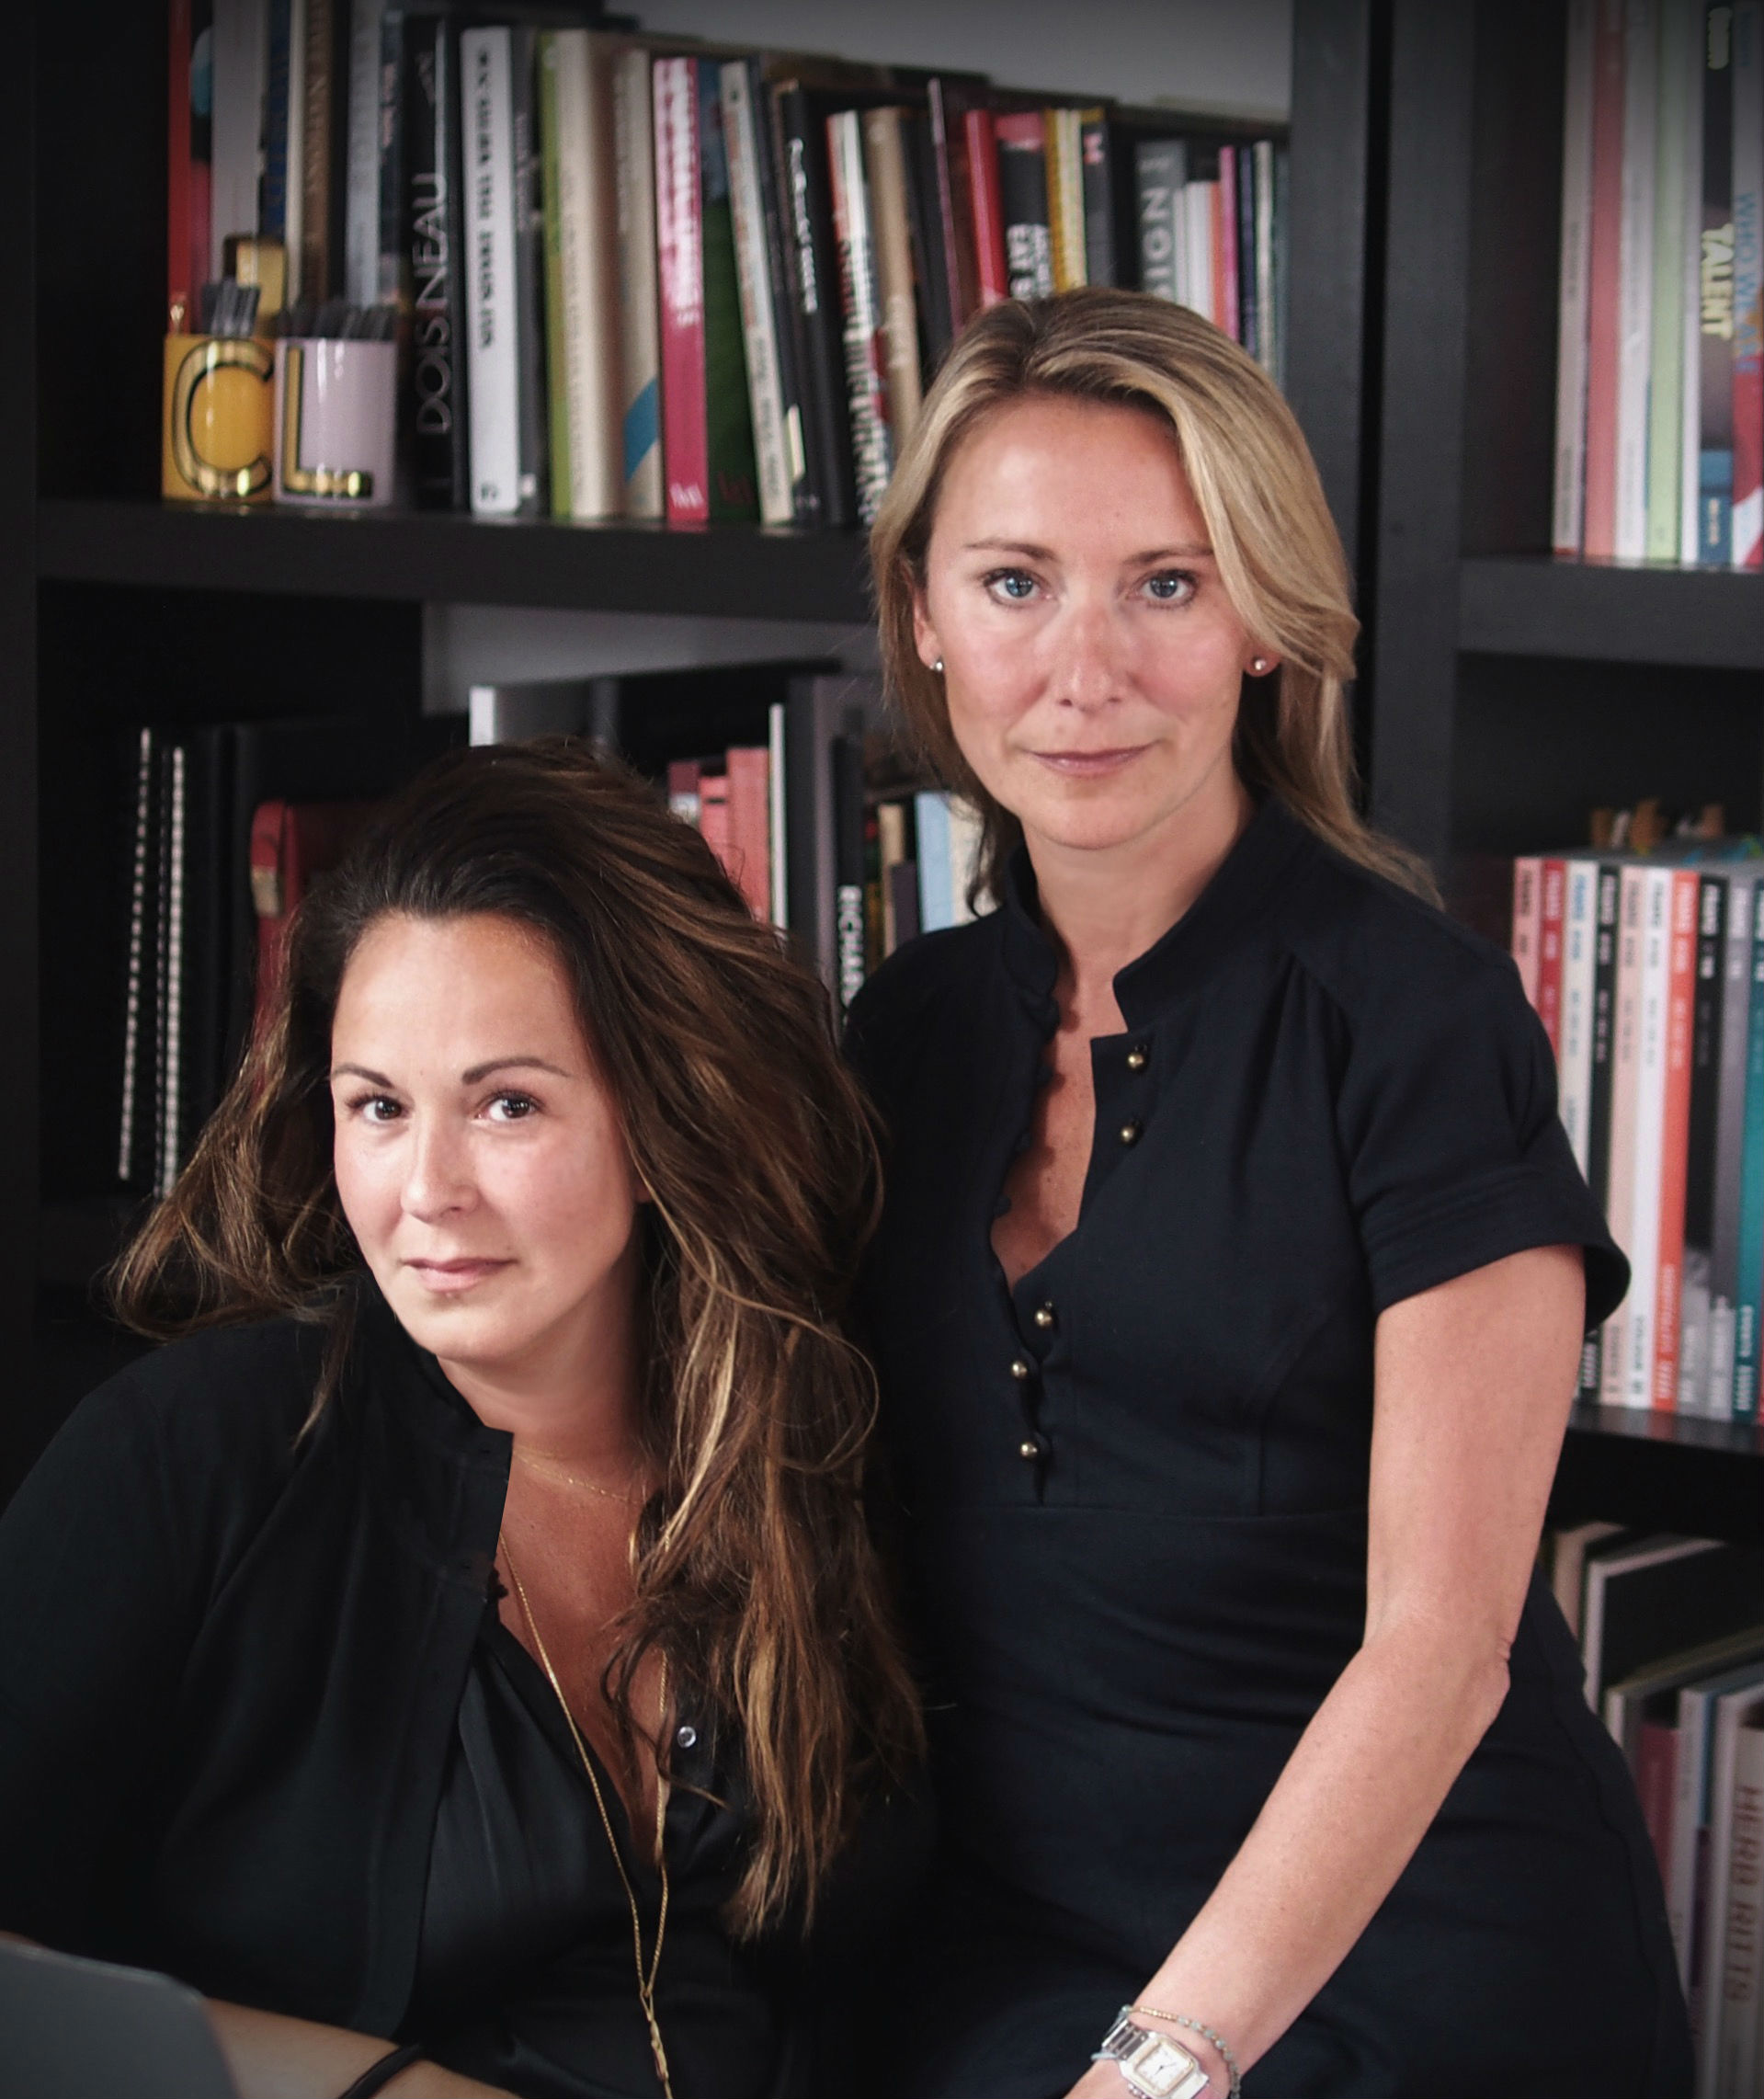 Charlotte lurot anouschka menzies   cofounders of bacchus agency